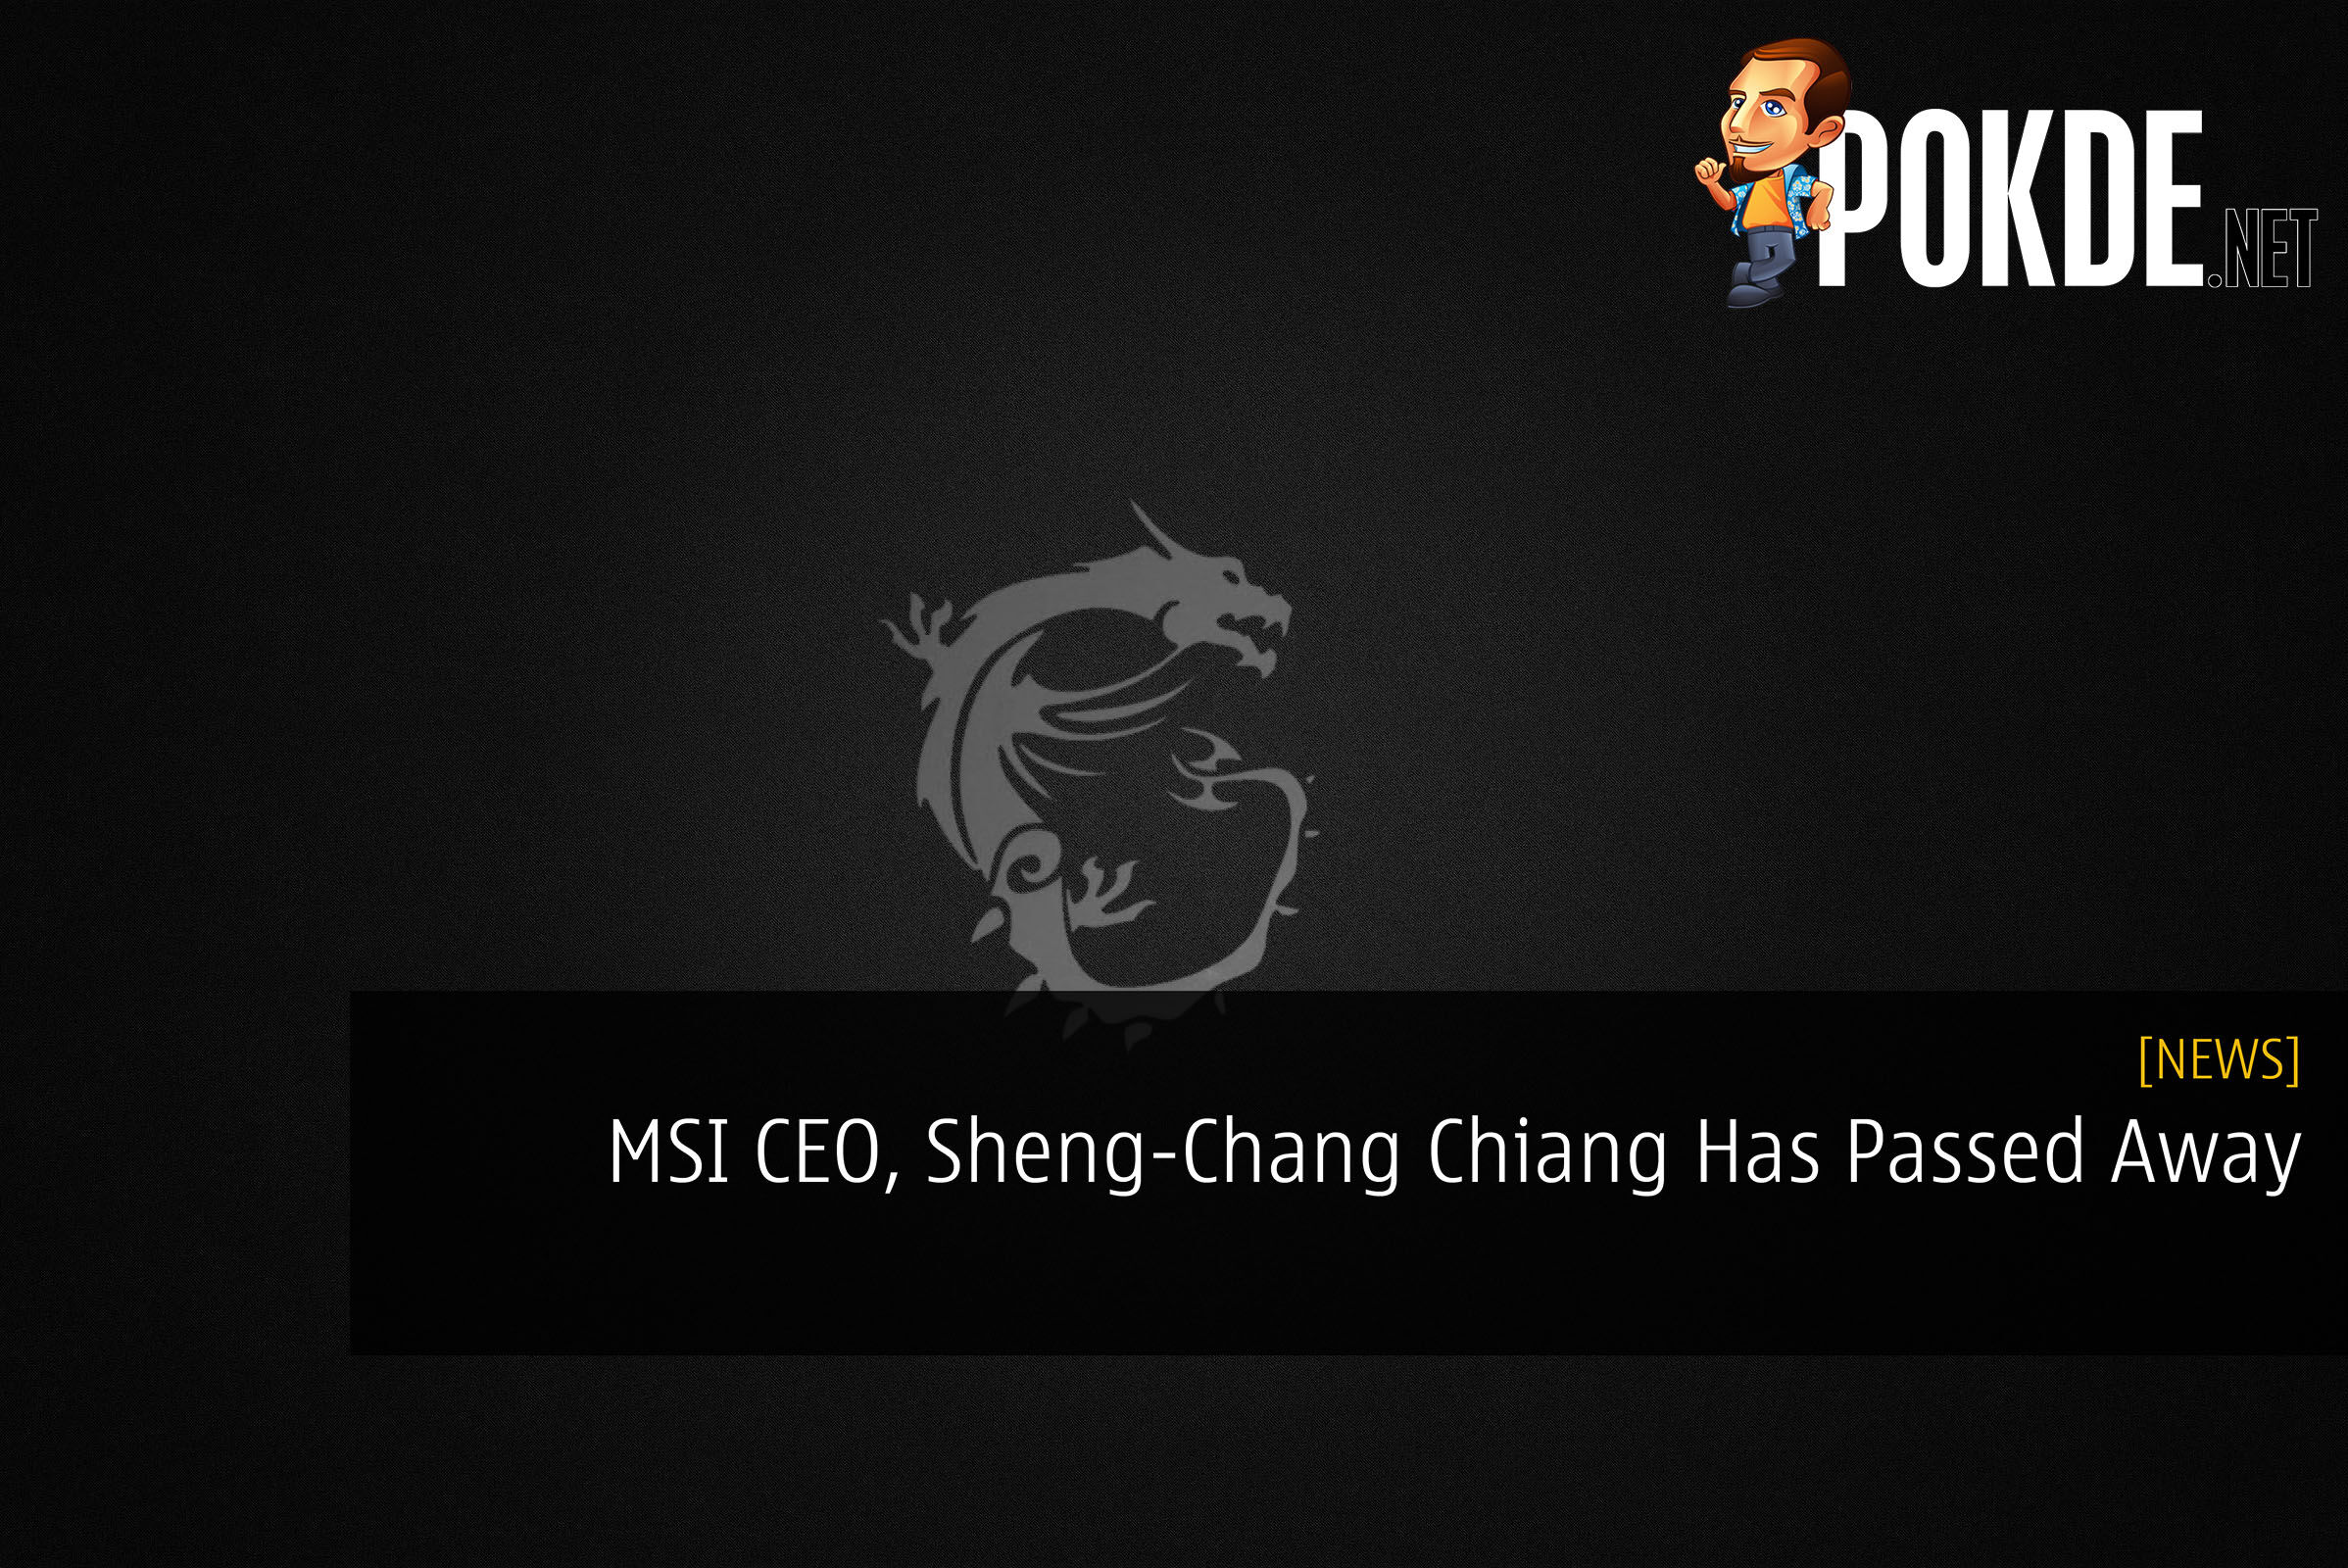 MSI CEO, Sheng-Chang Chiang Has Sadly Passed Away 2